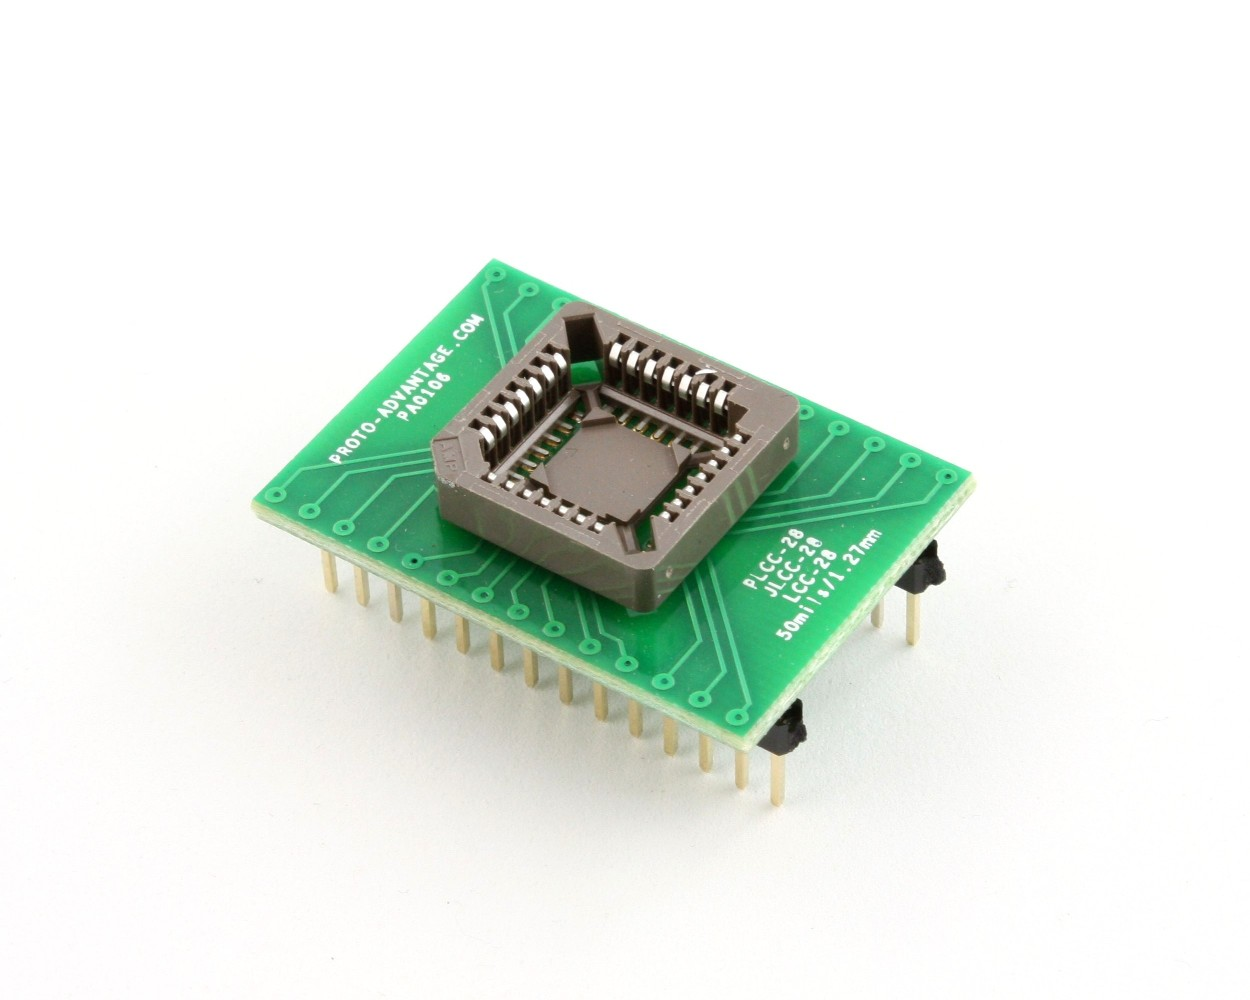 PLCC-28 Socket to DIP-28 Adapter (50 mils / 1.27 mm pitch) 0